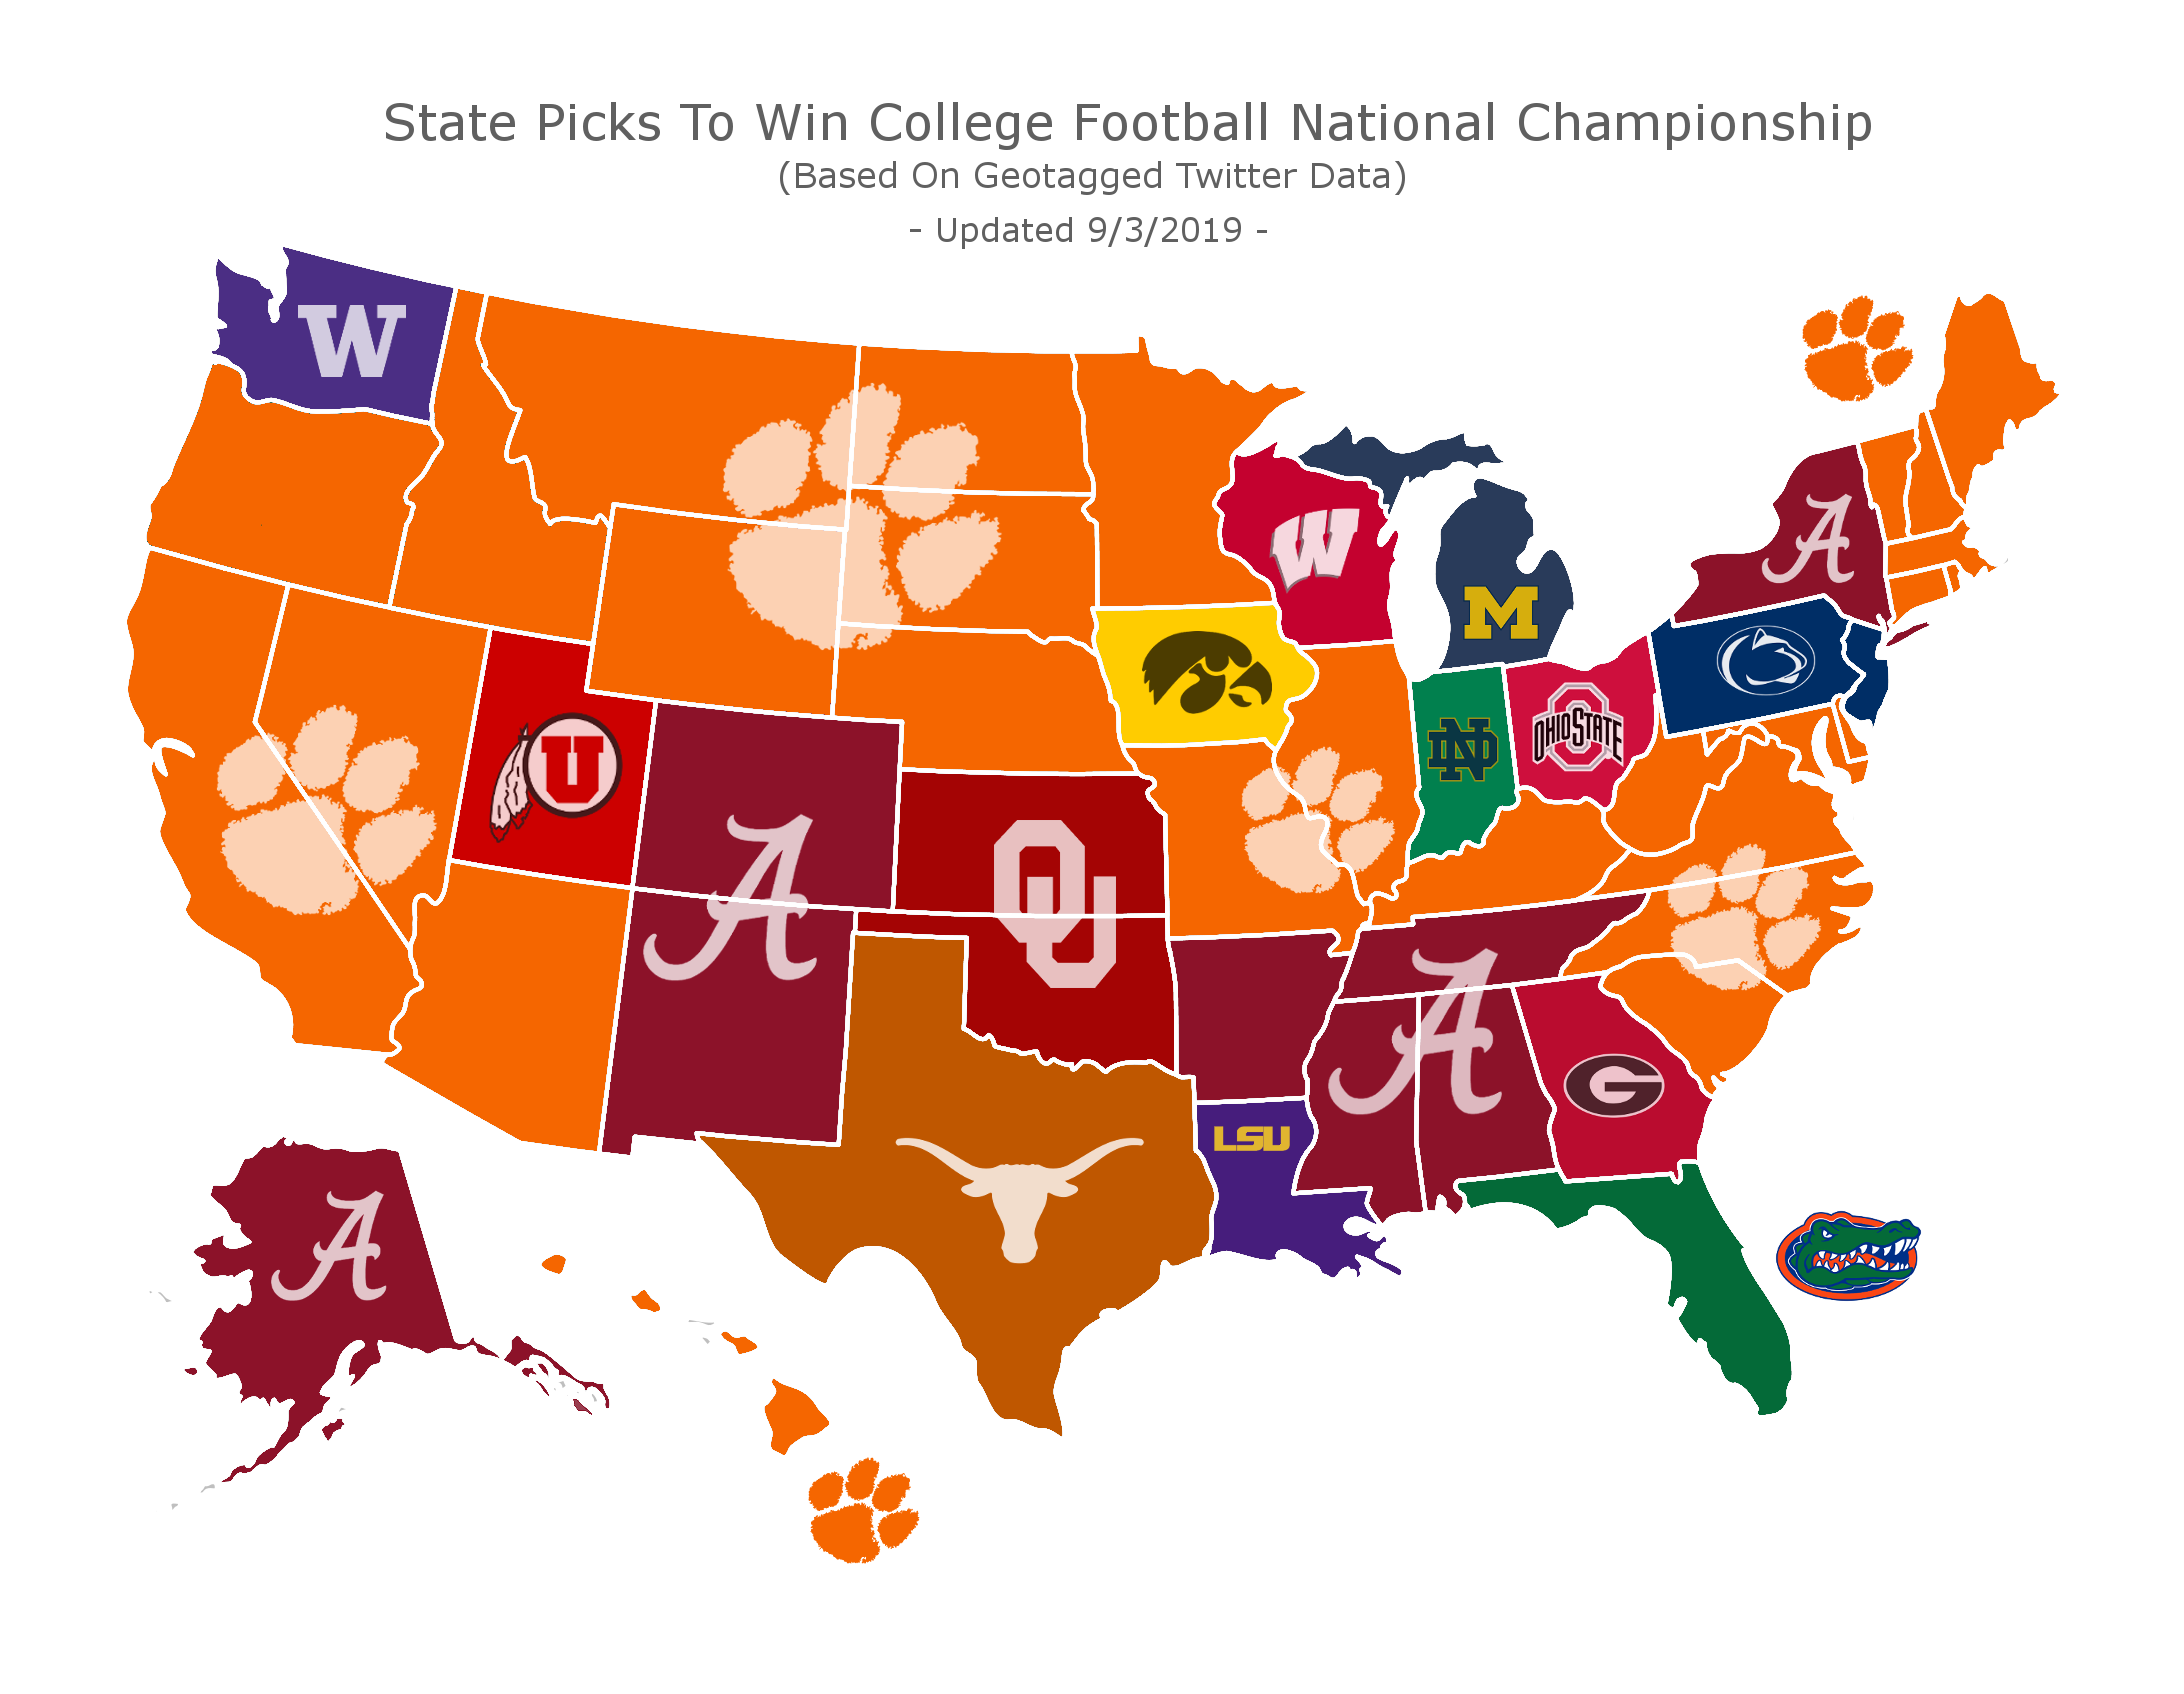 National Champions Map (Credit: casinoinsider.com)